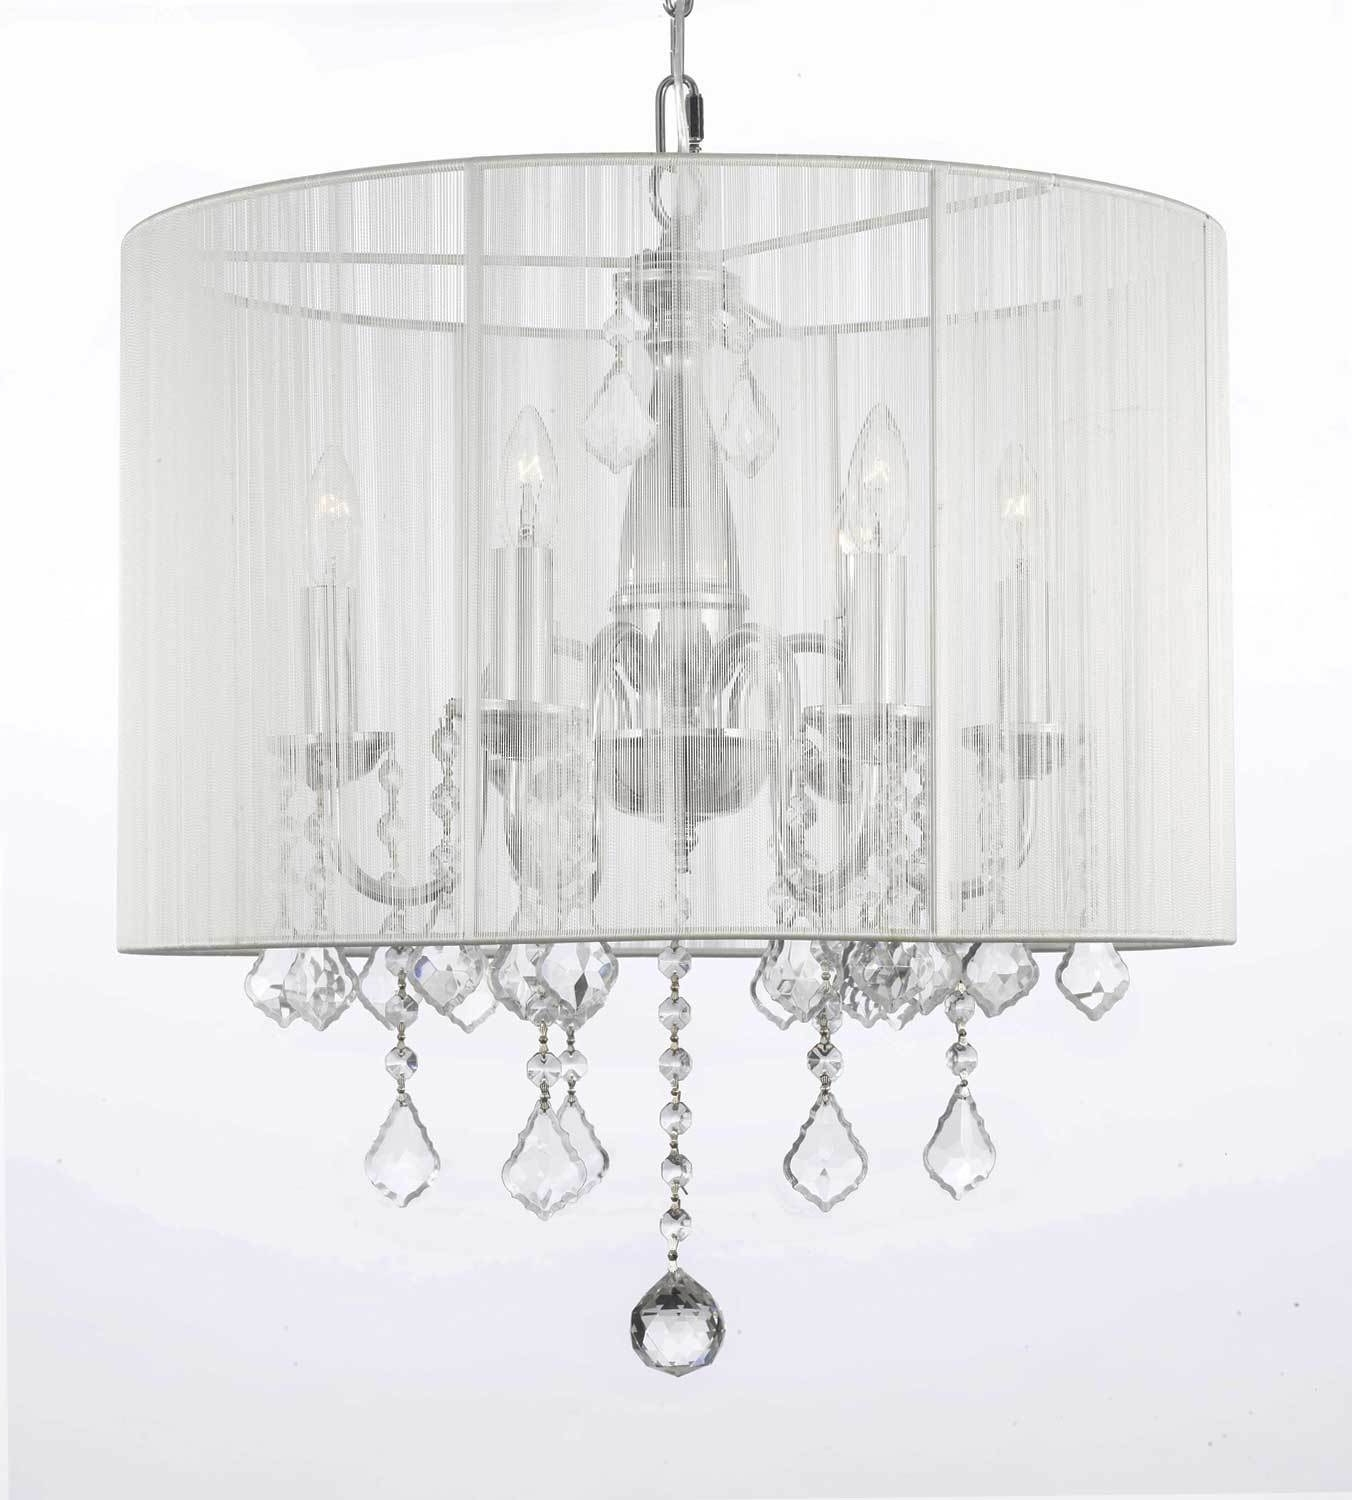 Latest Attractive White Chandelier With Shades G7 11266 Gallery Chandeliers Pertaining To Crystal Chandeliers With Shades (View 9 of 15)